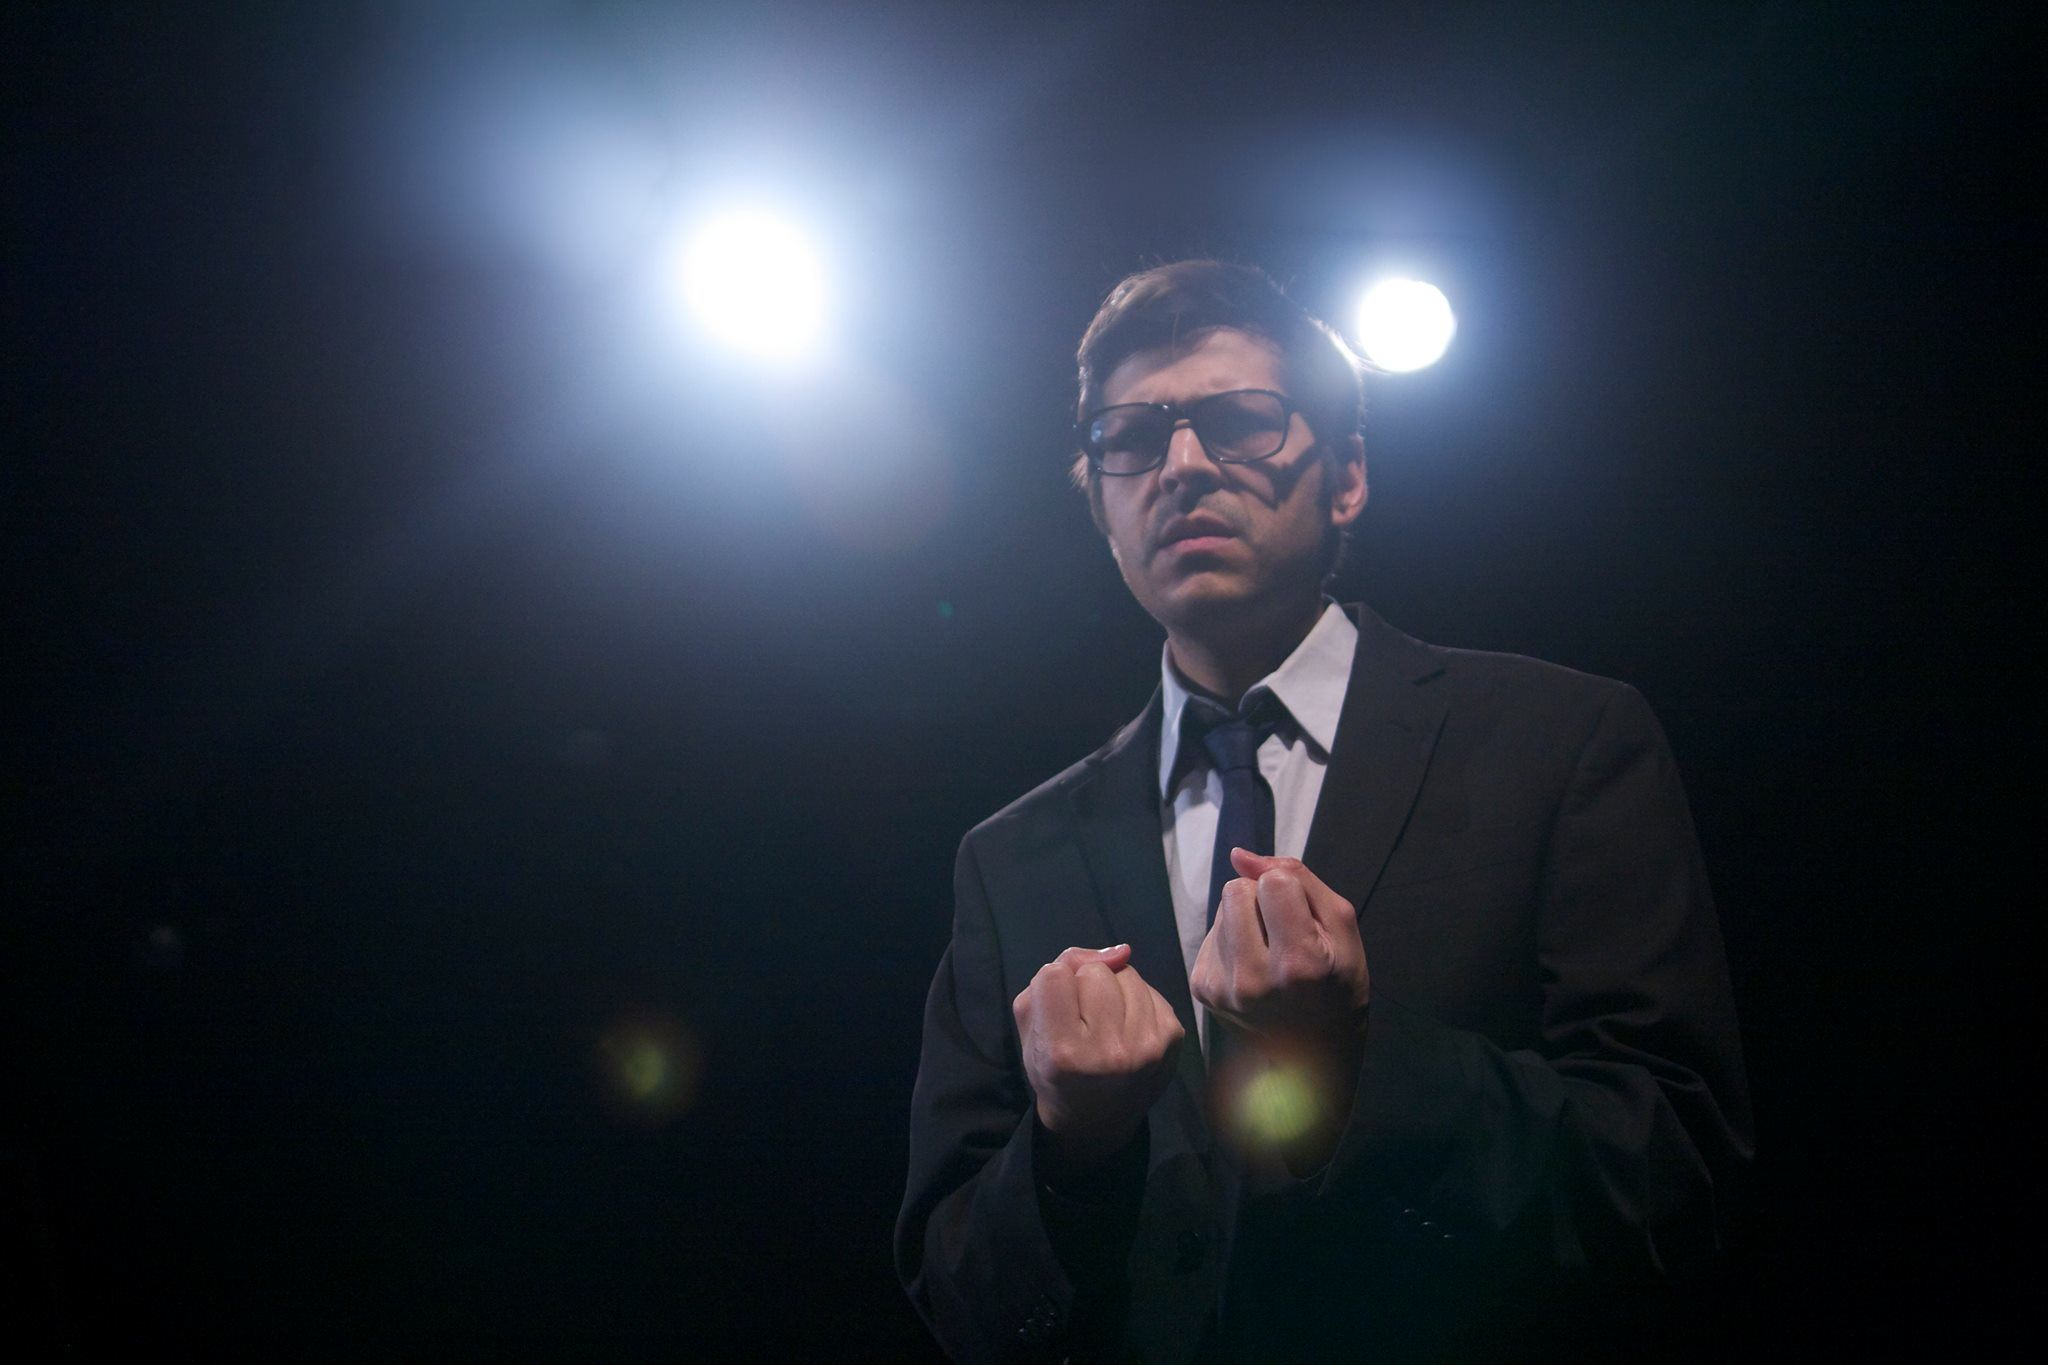 A Monologue of Comedy and Tragedy from Theatre [502]